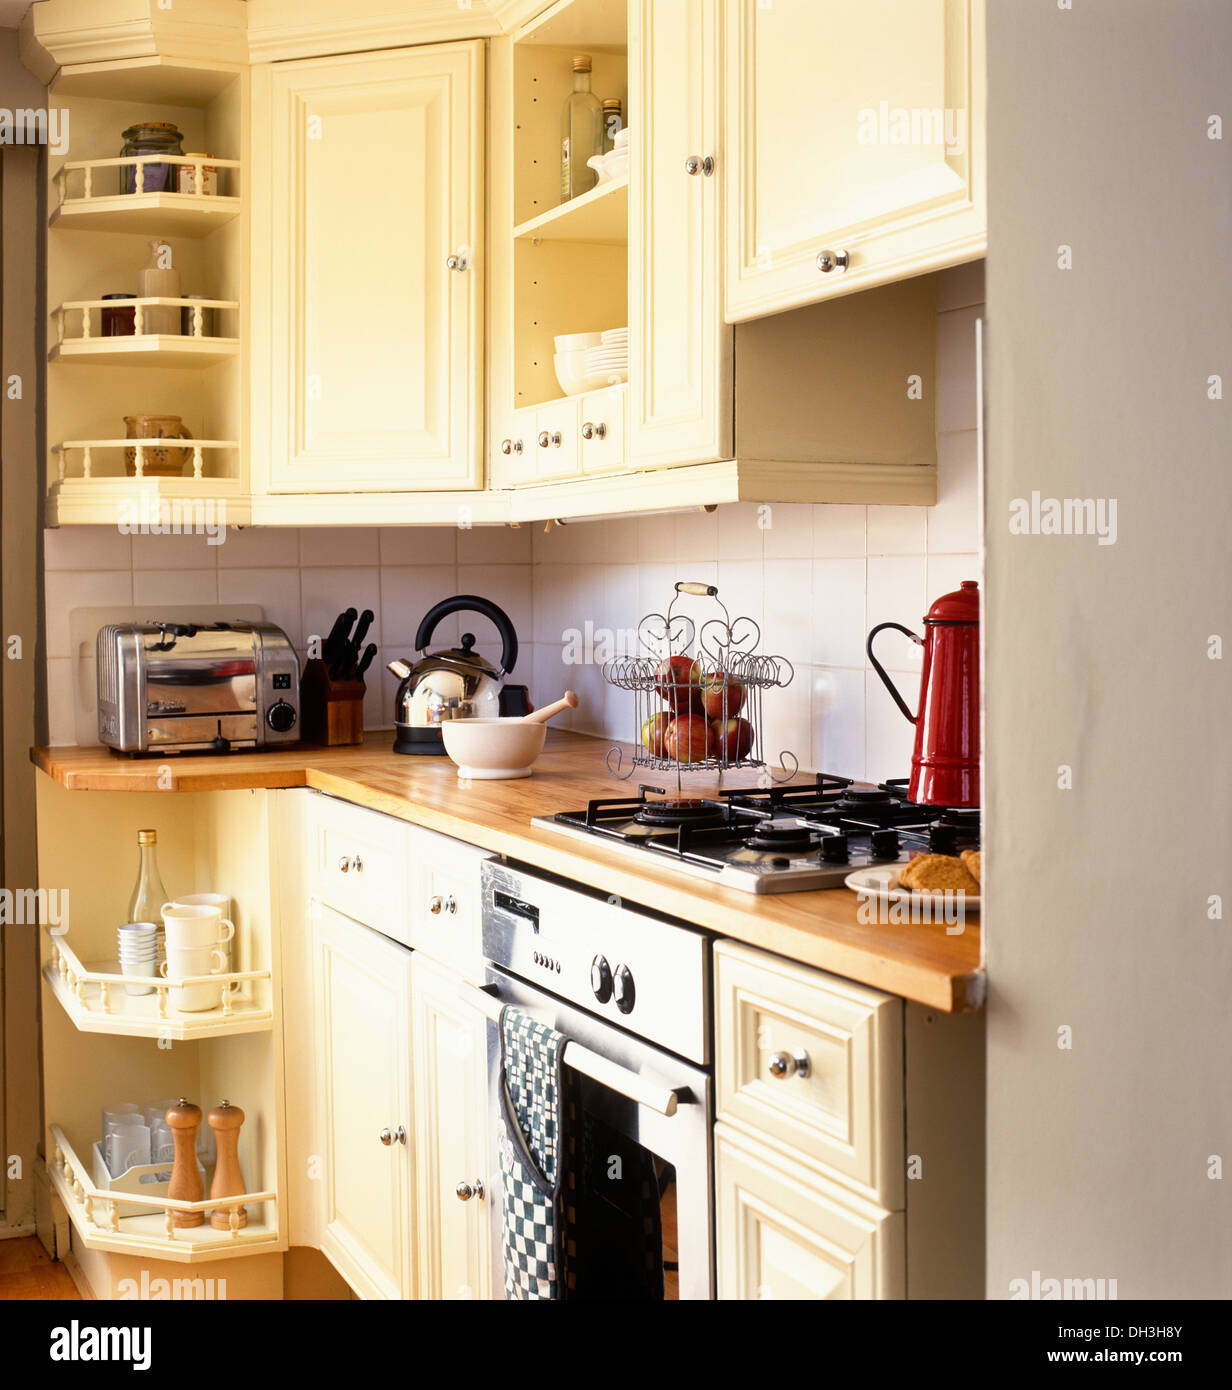 Small Fitted Kitchen Integral Oven In Fitted Unit In Modern Country Kitchen With Pale